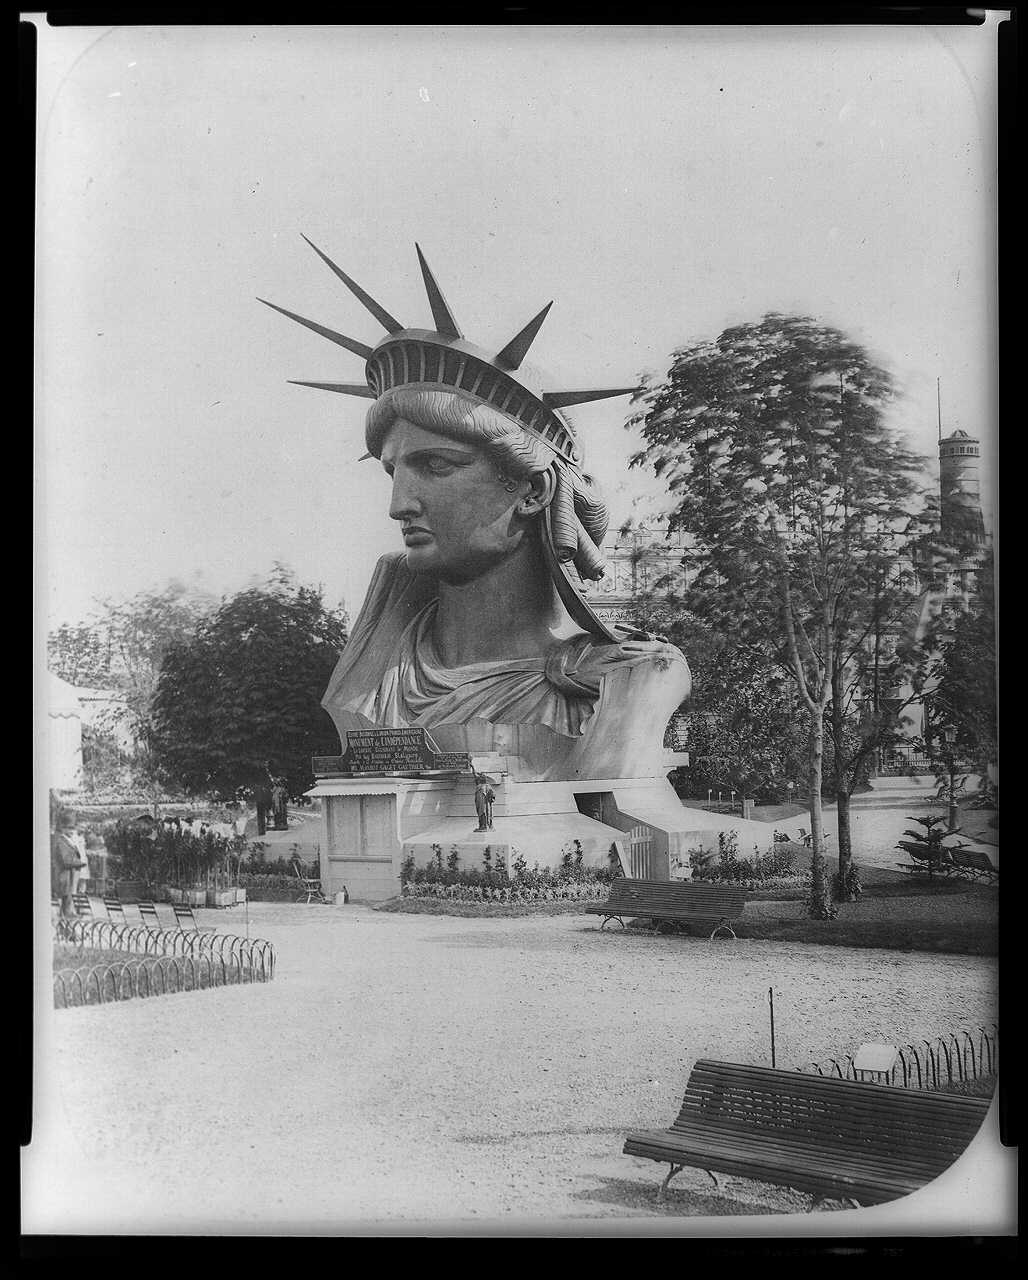 Head of Statue of Liberty on display in park in Paris LCCN97502744.jpg